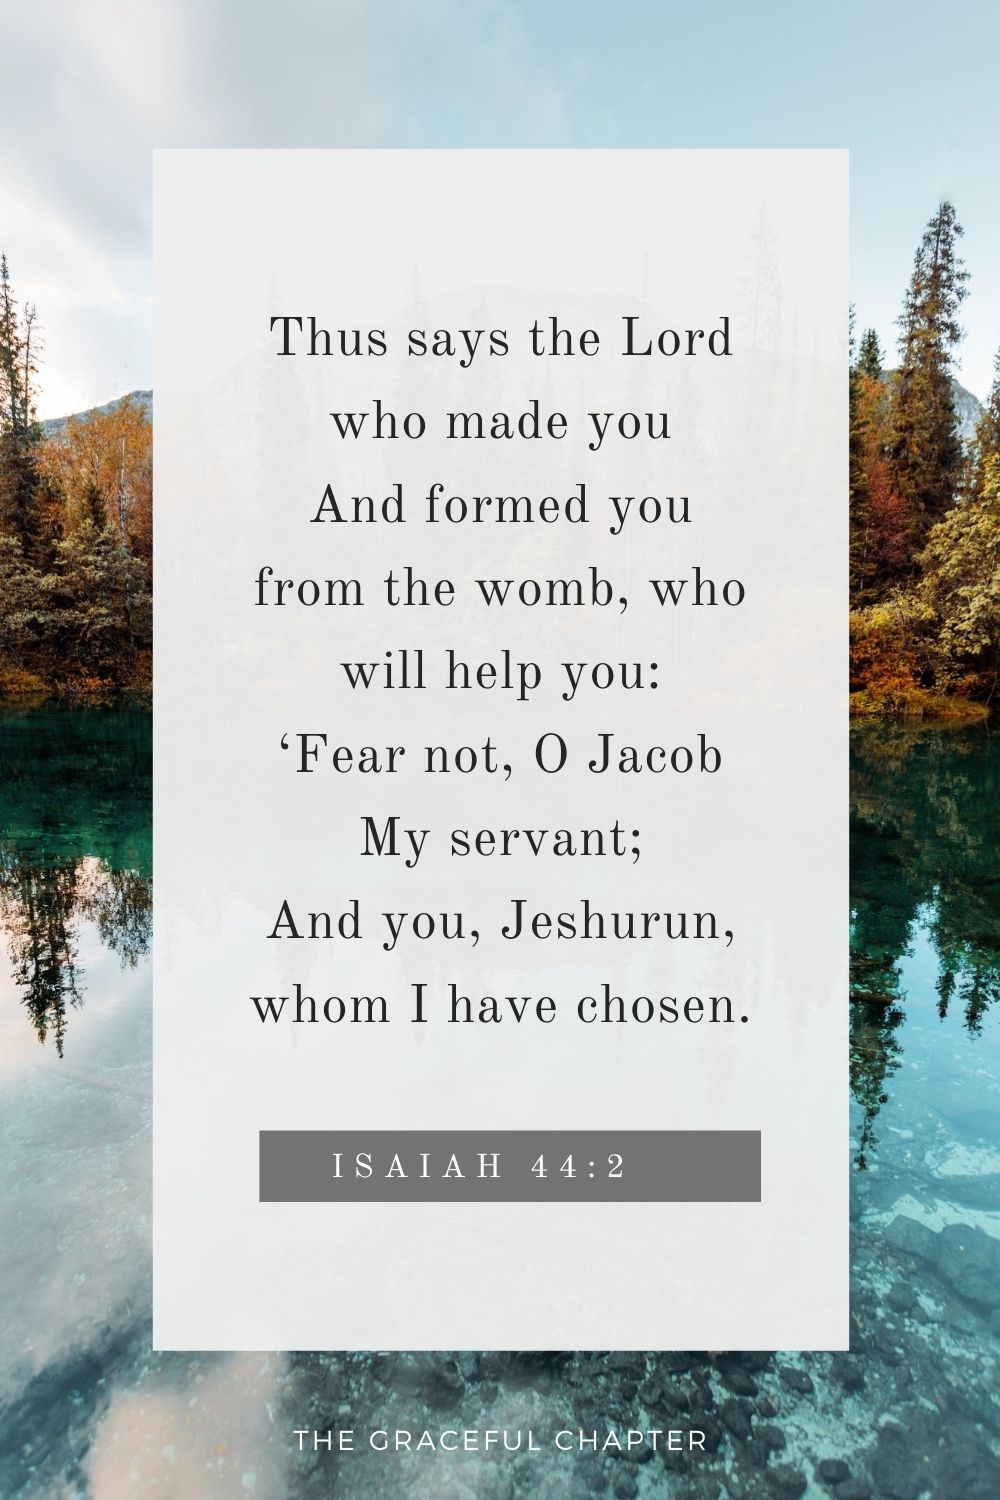 Thus says the Lord who made you And formed you from the womb, who will help you: 'Fear not, O Jacob My servant; And you, Jeshurun, whom I have chosen. Thus says the Lord who made you And formed you from the womb, who will help you: 'Fear not, O Jacob My servant; And you, Jeshurun, whom I have chosen. Isaiah 44:2